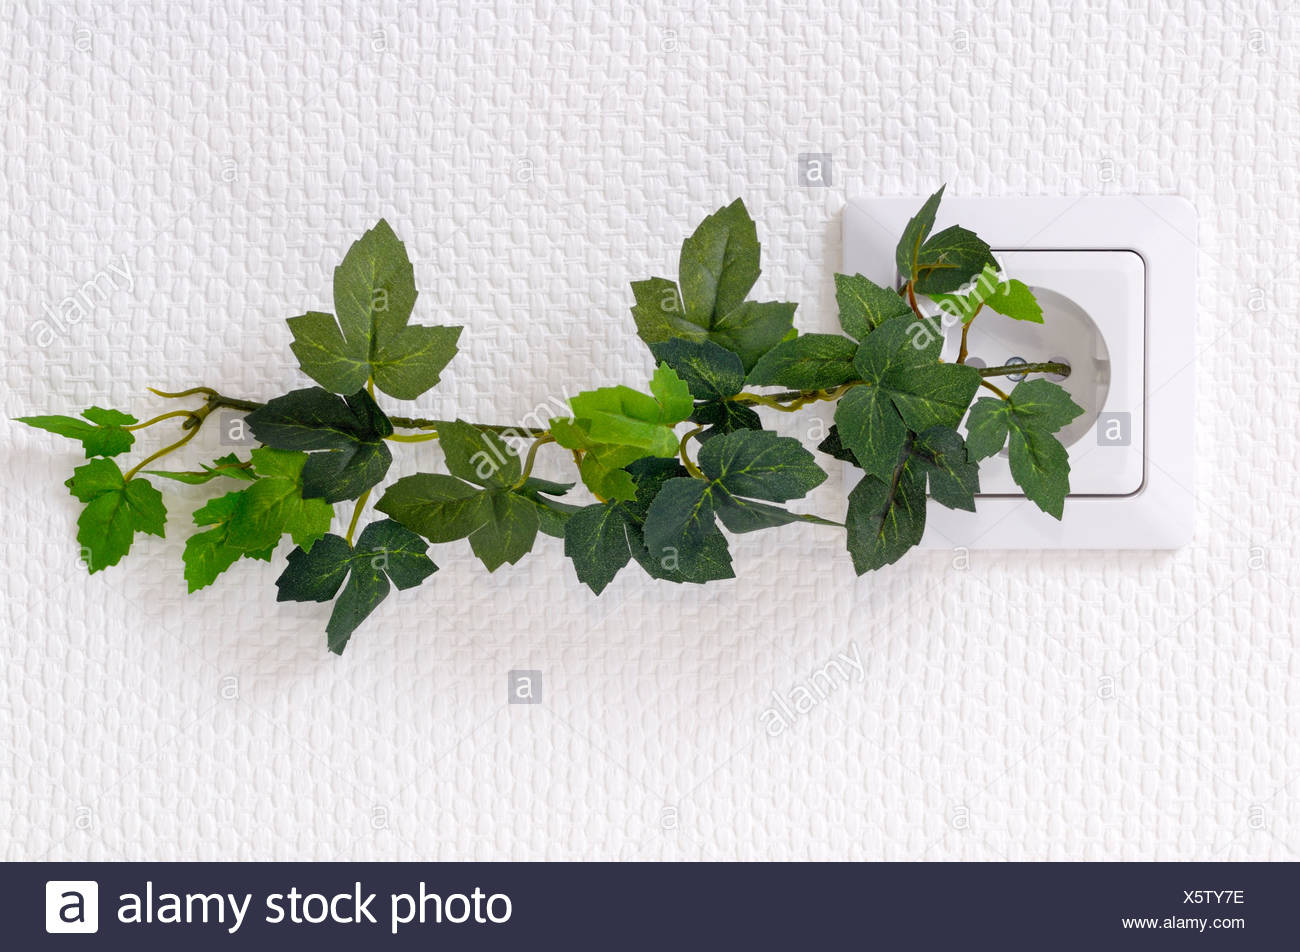 plant growing from - Stock Image